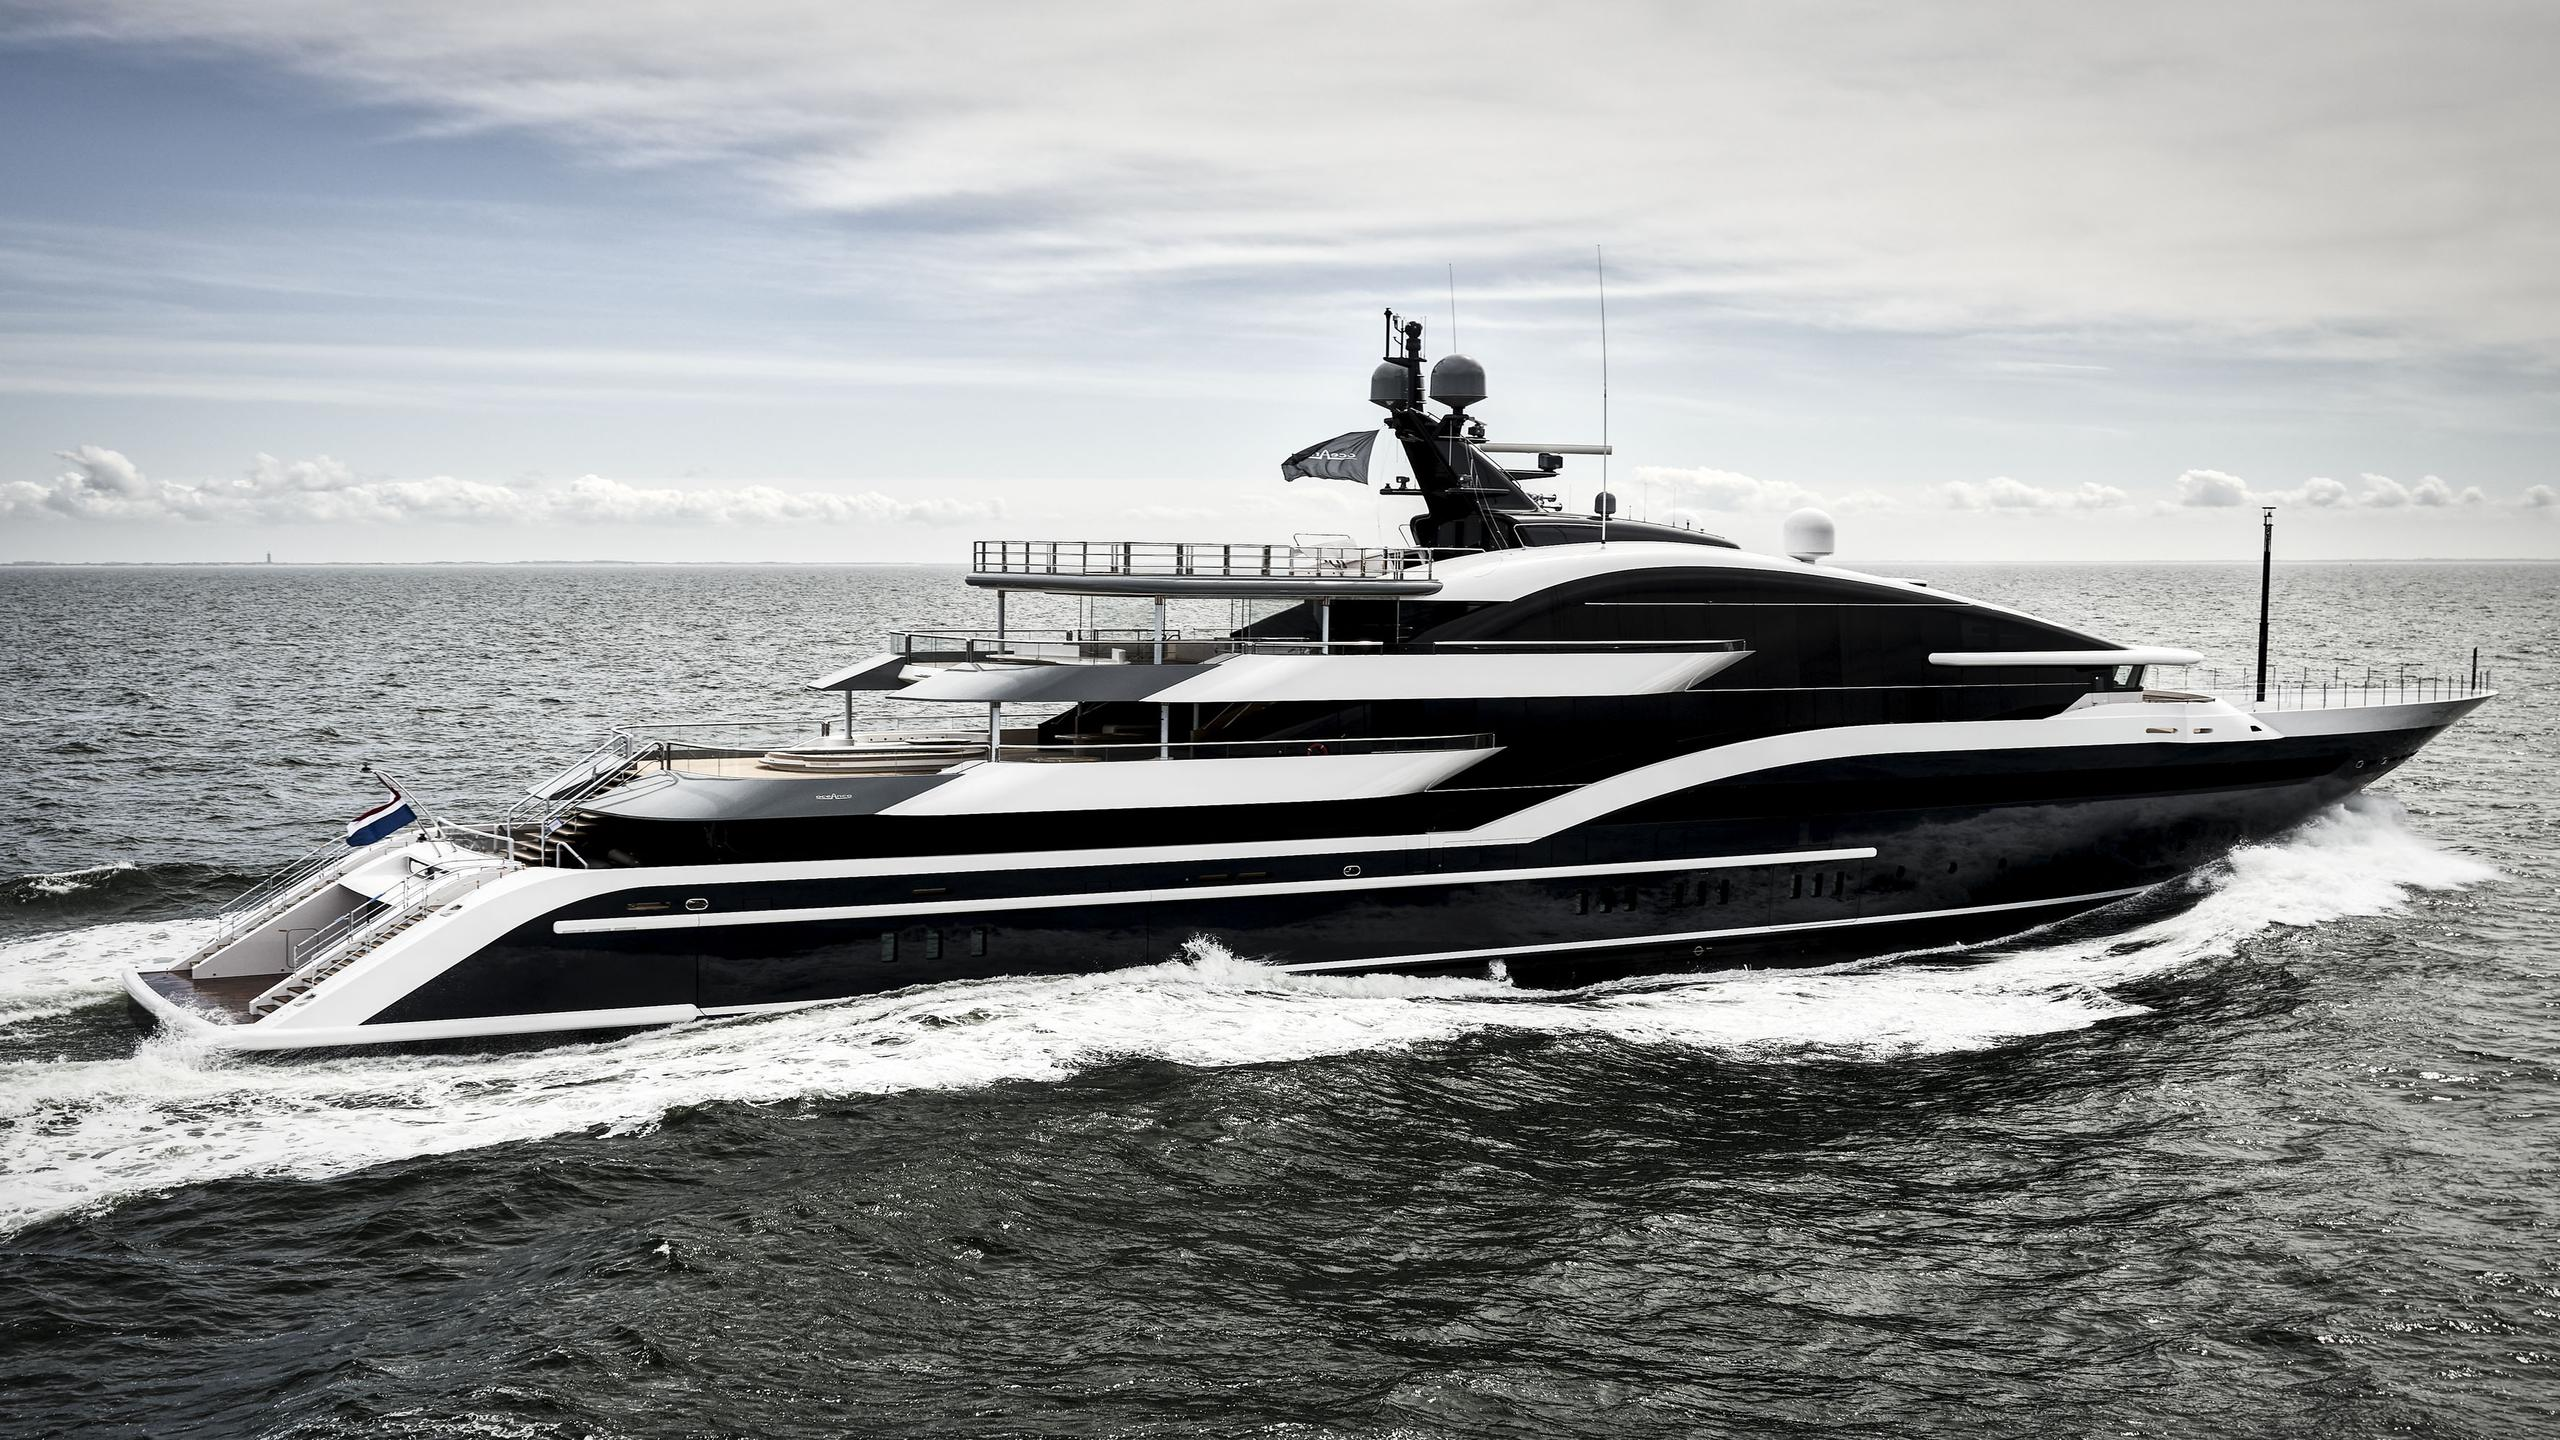 dar project shark y717 motoryacht oceanco 90m 2018 sea trials profile